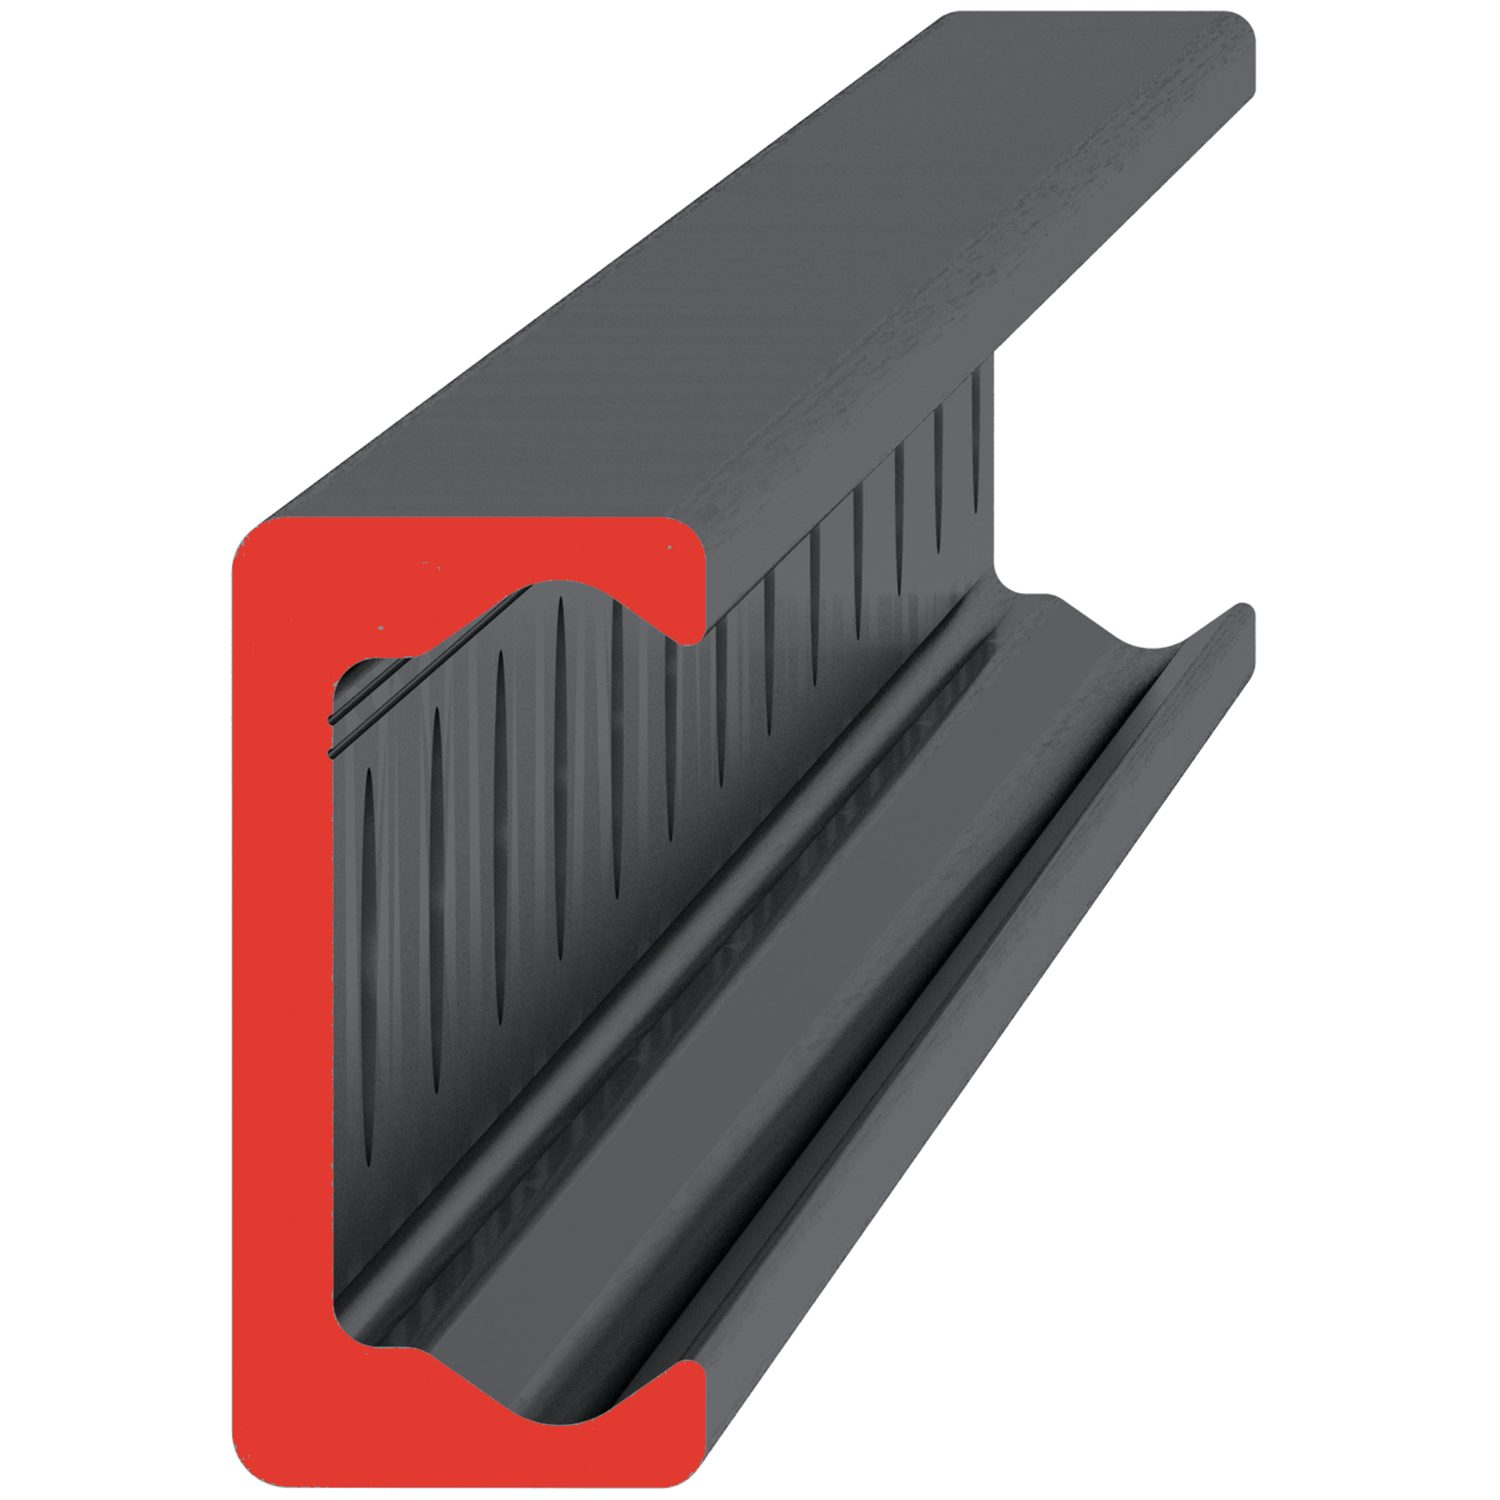 Product L1928.TL, Medium Duty T Rail counterbored holes /